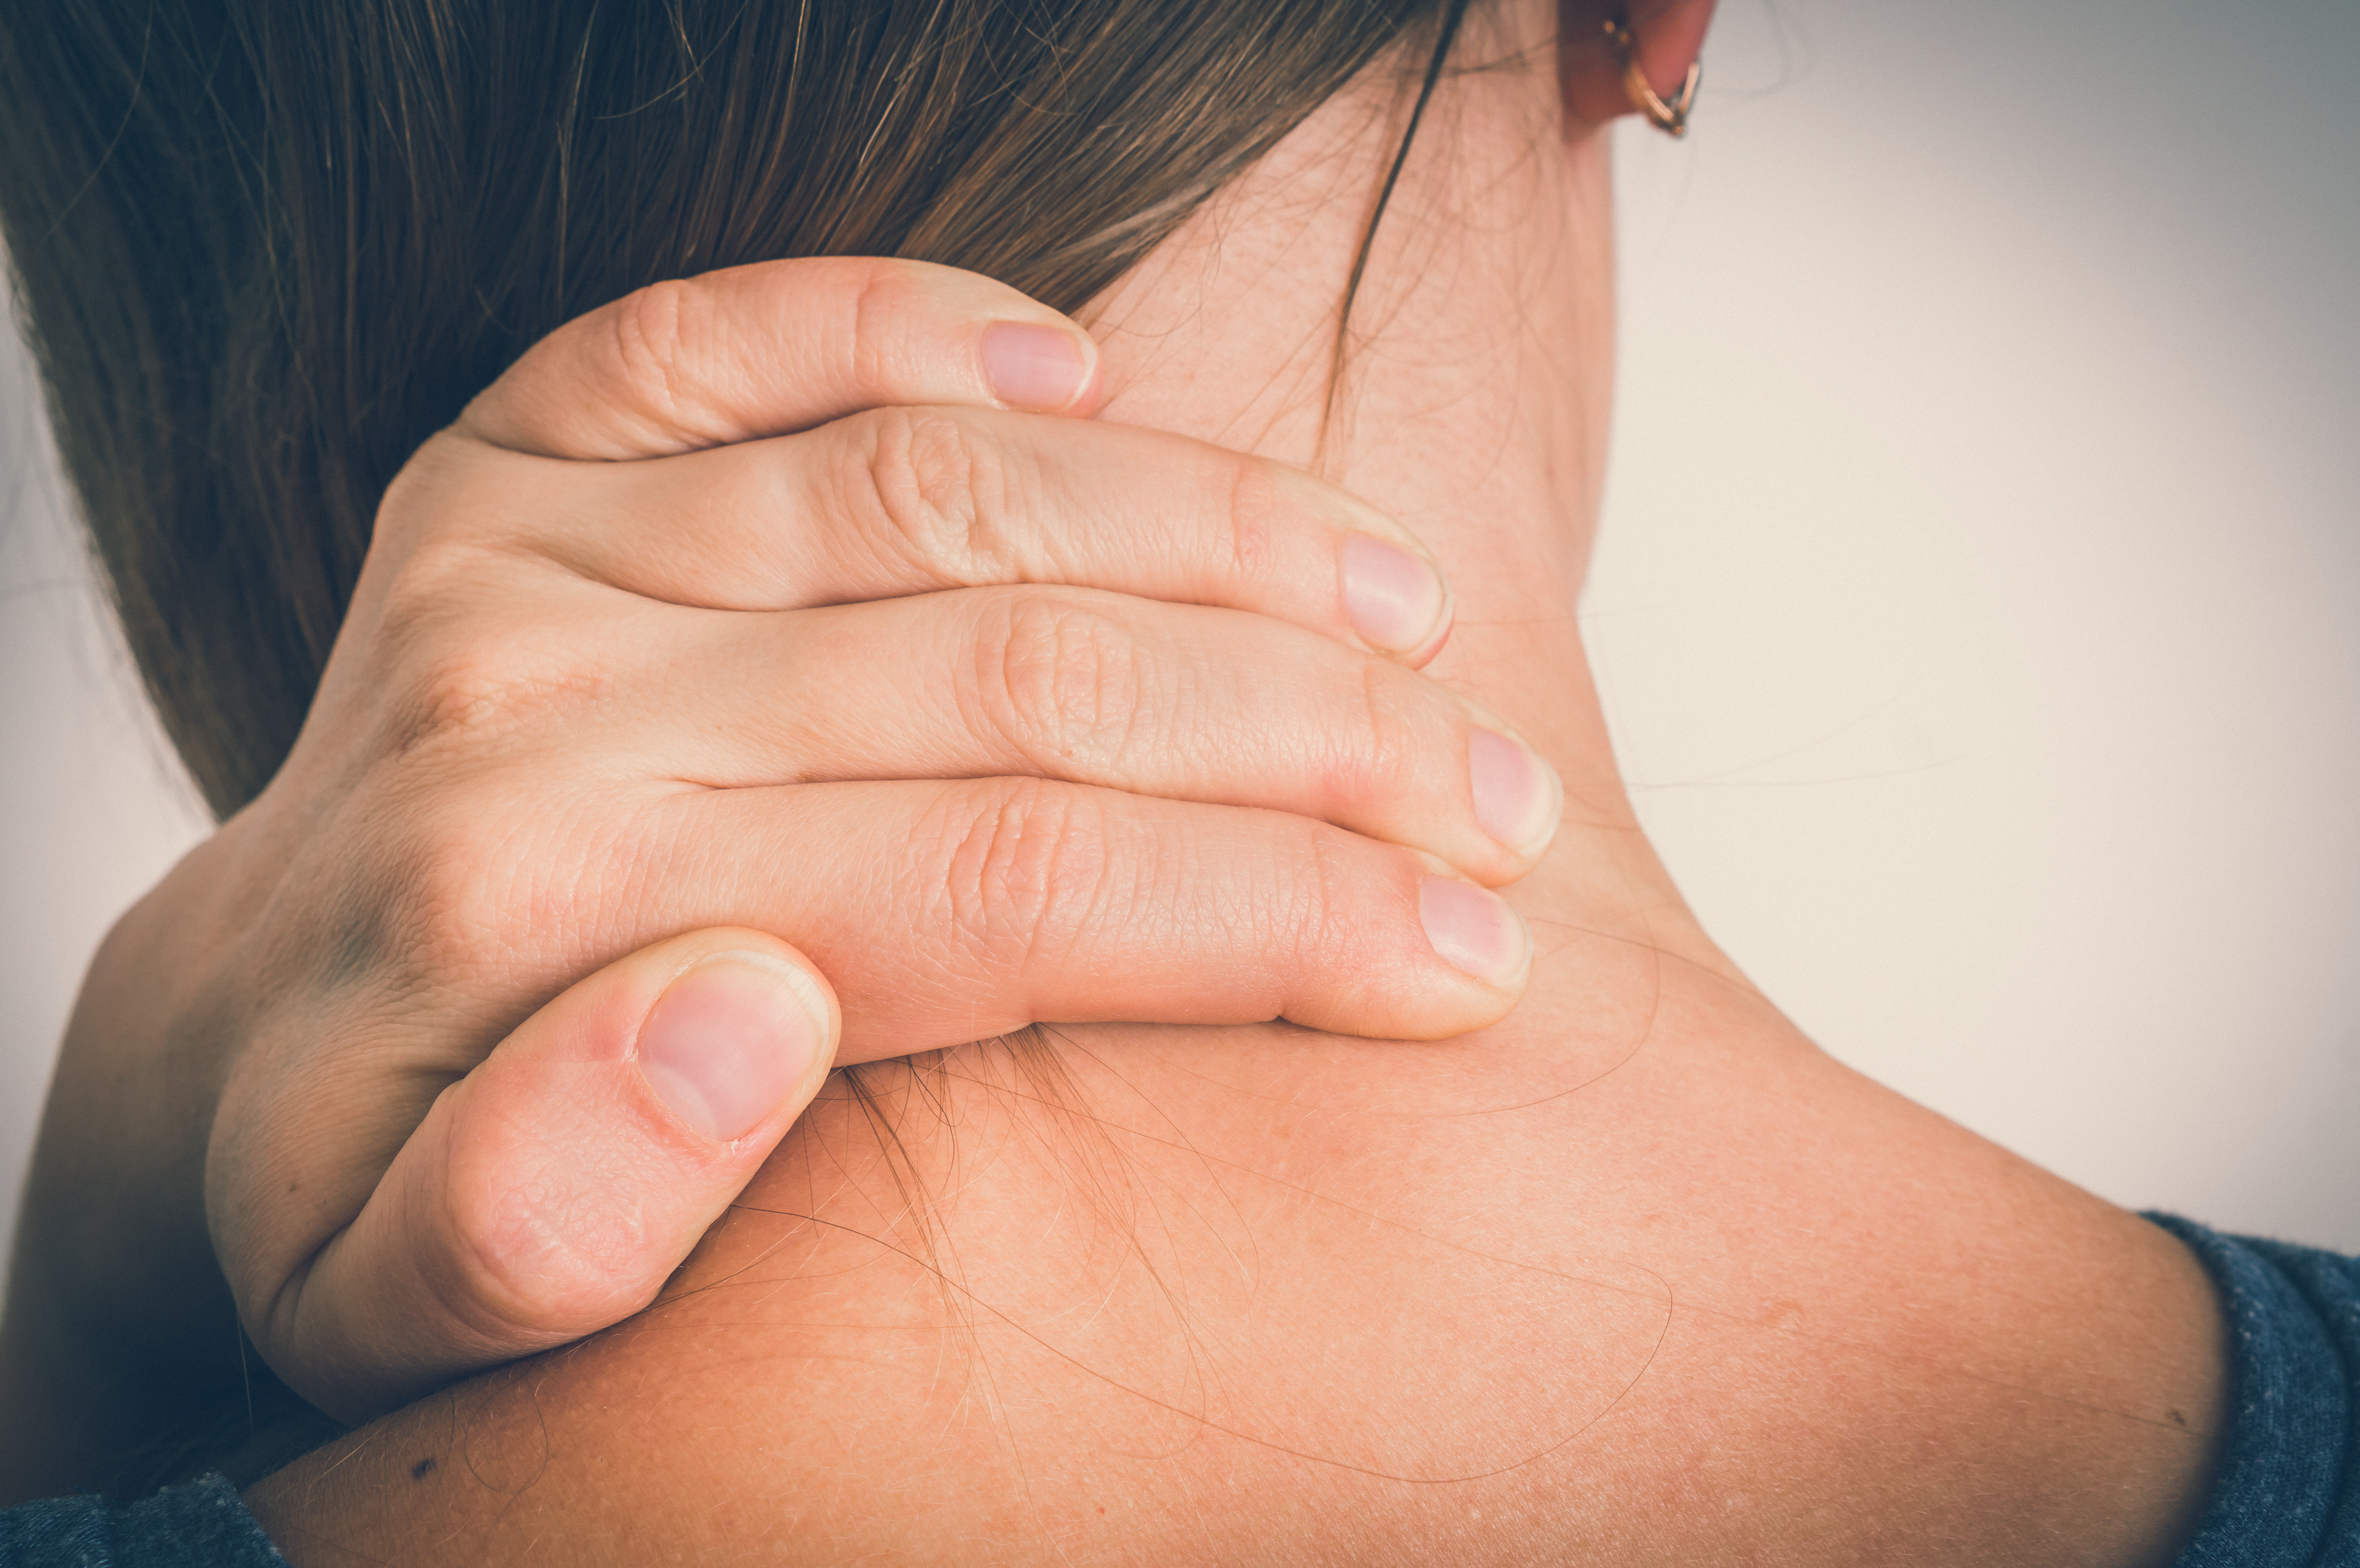 3 Sessions: One-on-One Pain Management